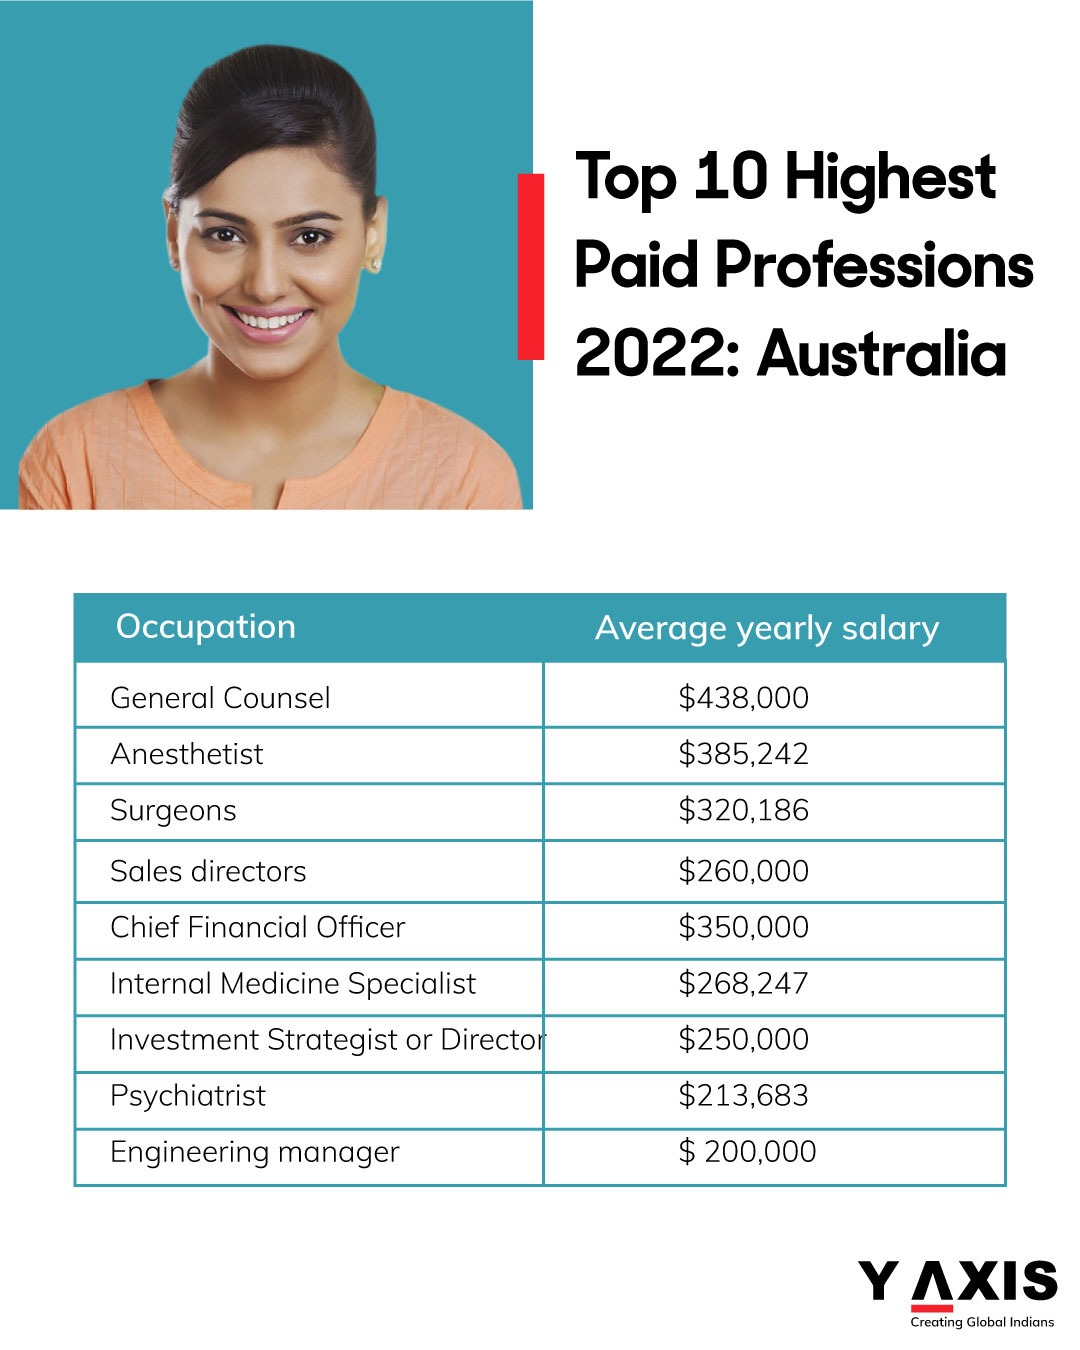 Want to work in Australia? Look at the highest-paid jobs to be in 2022